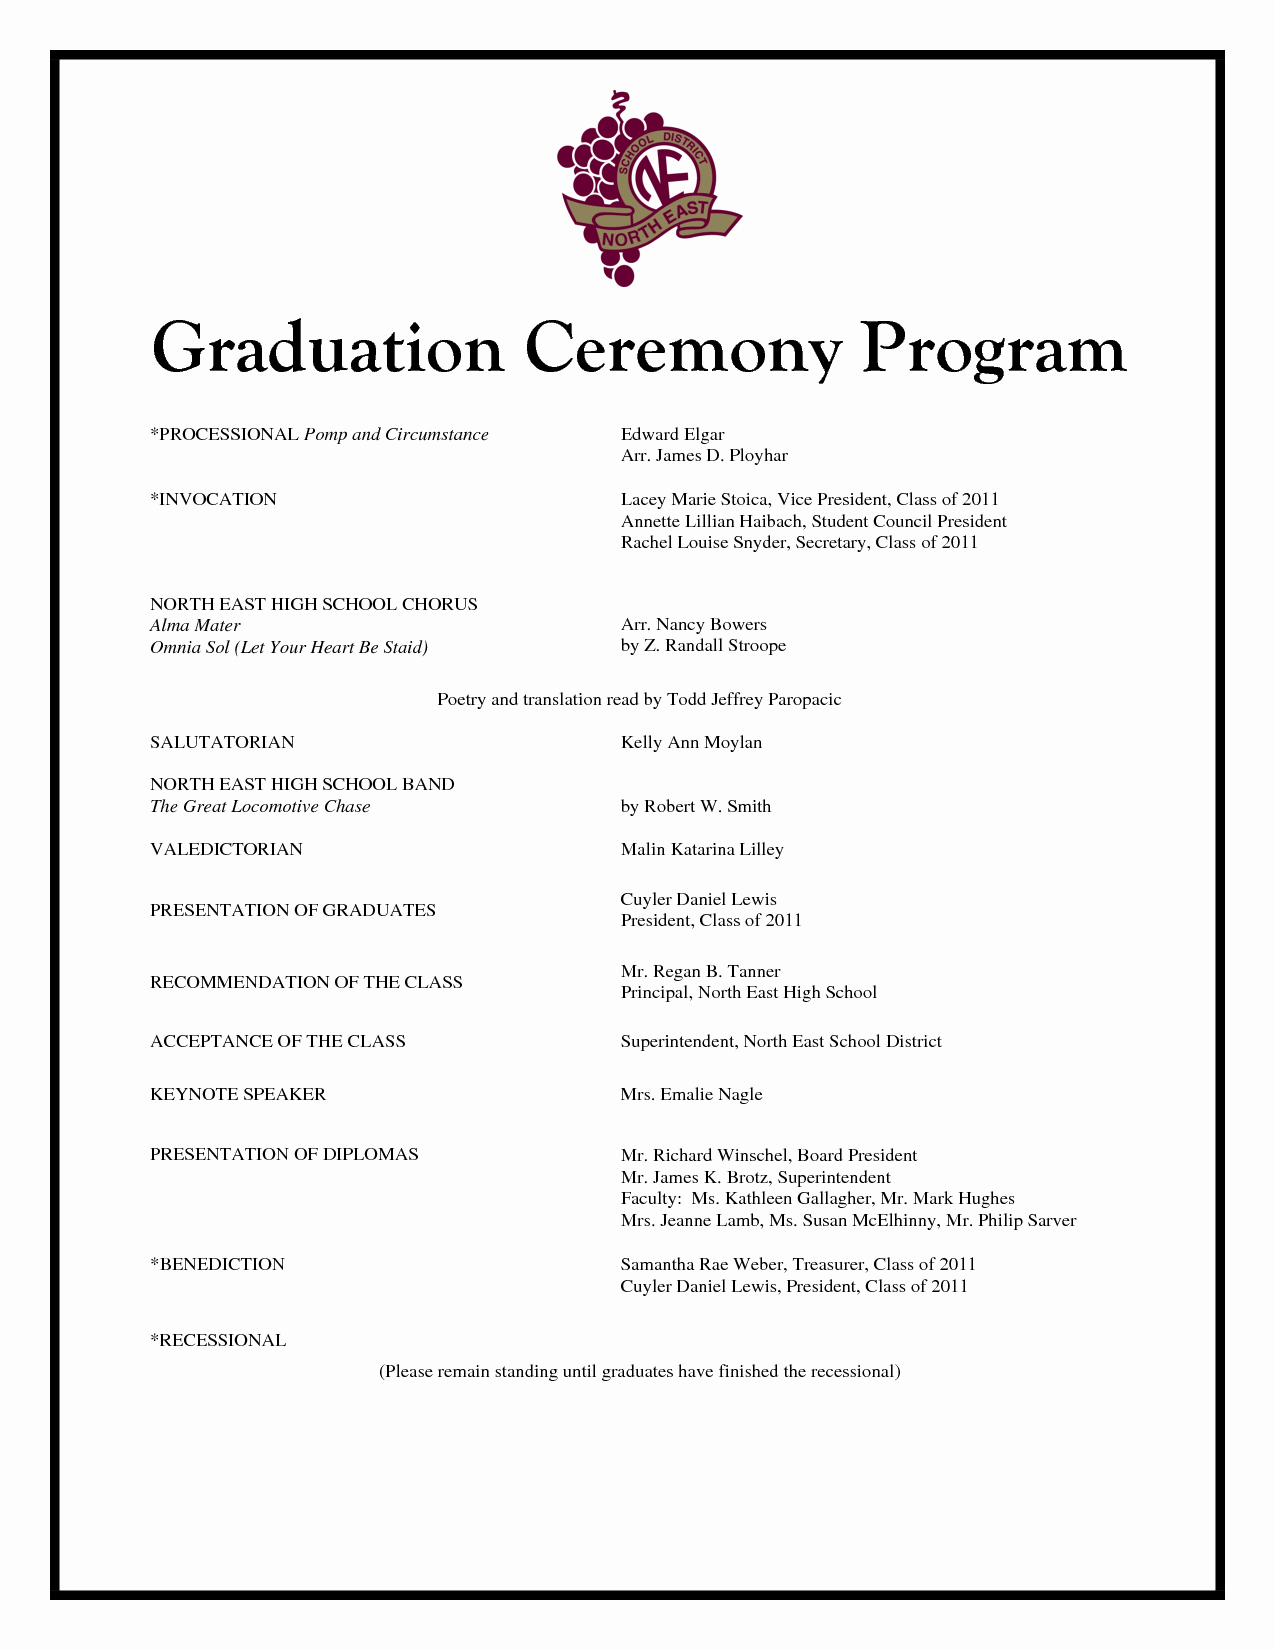 Kindergarten Graduation Program Template Free Inspirational Graduation Program Template Beepmunk